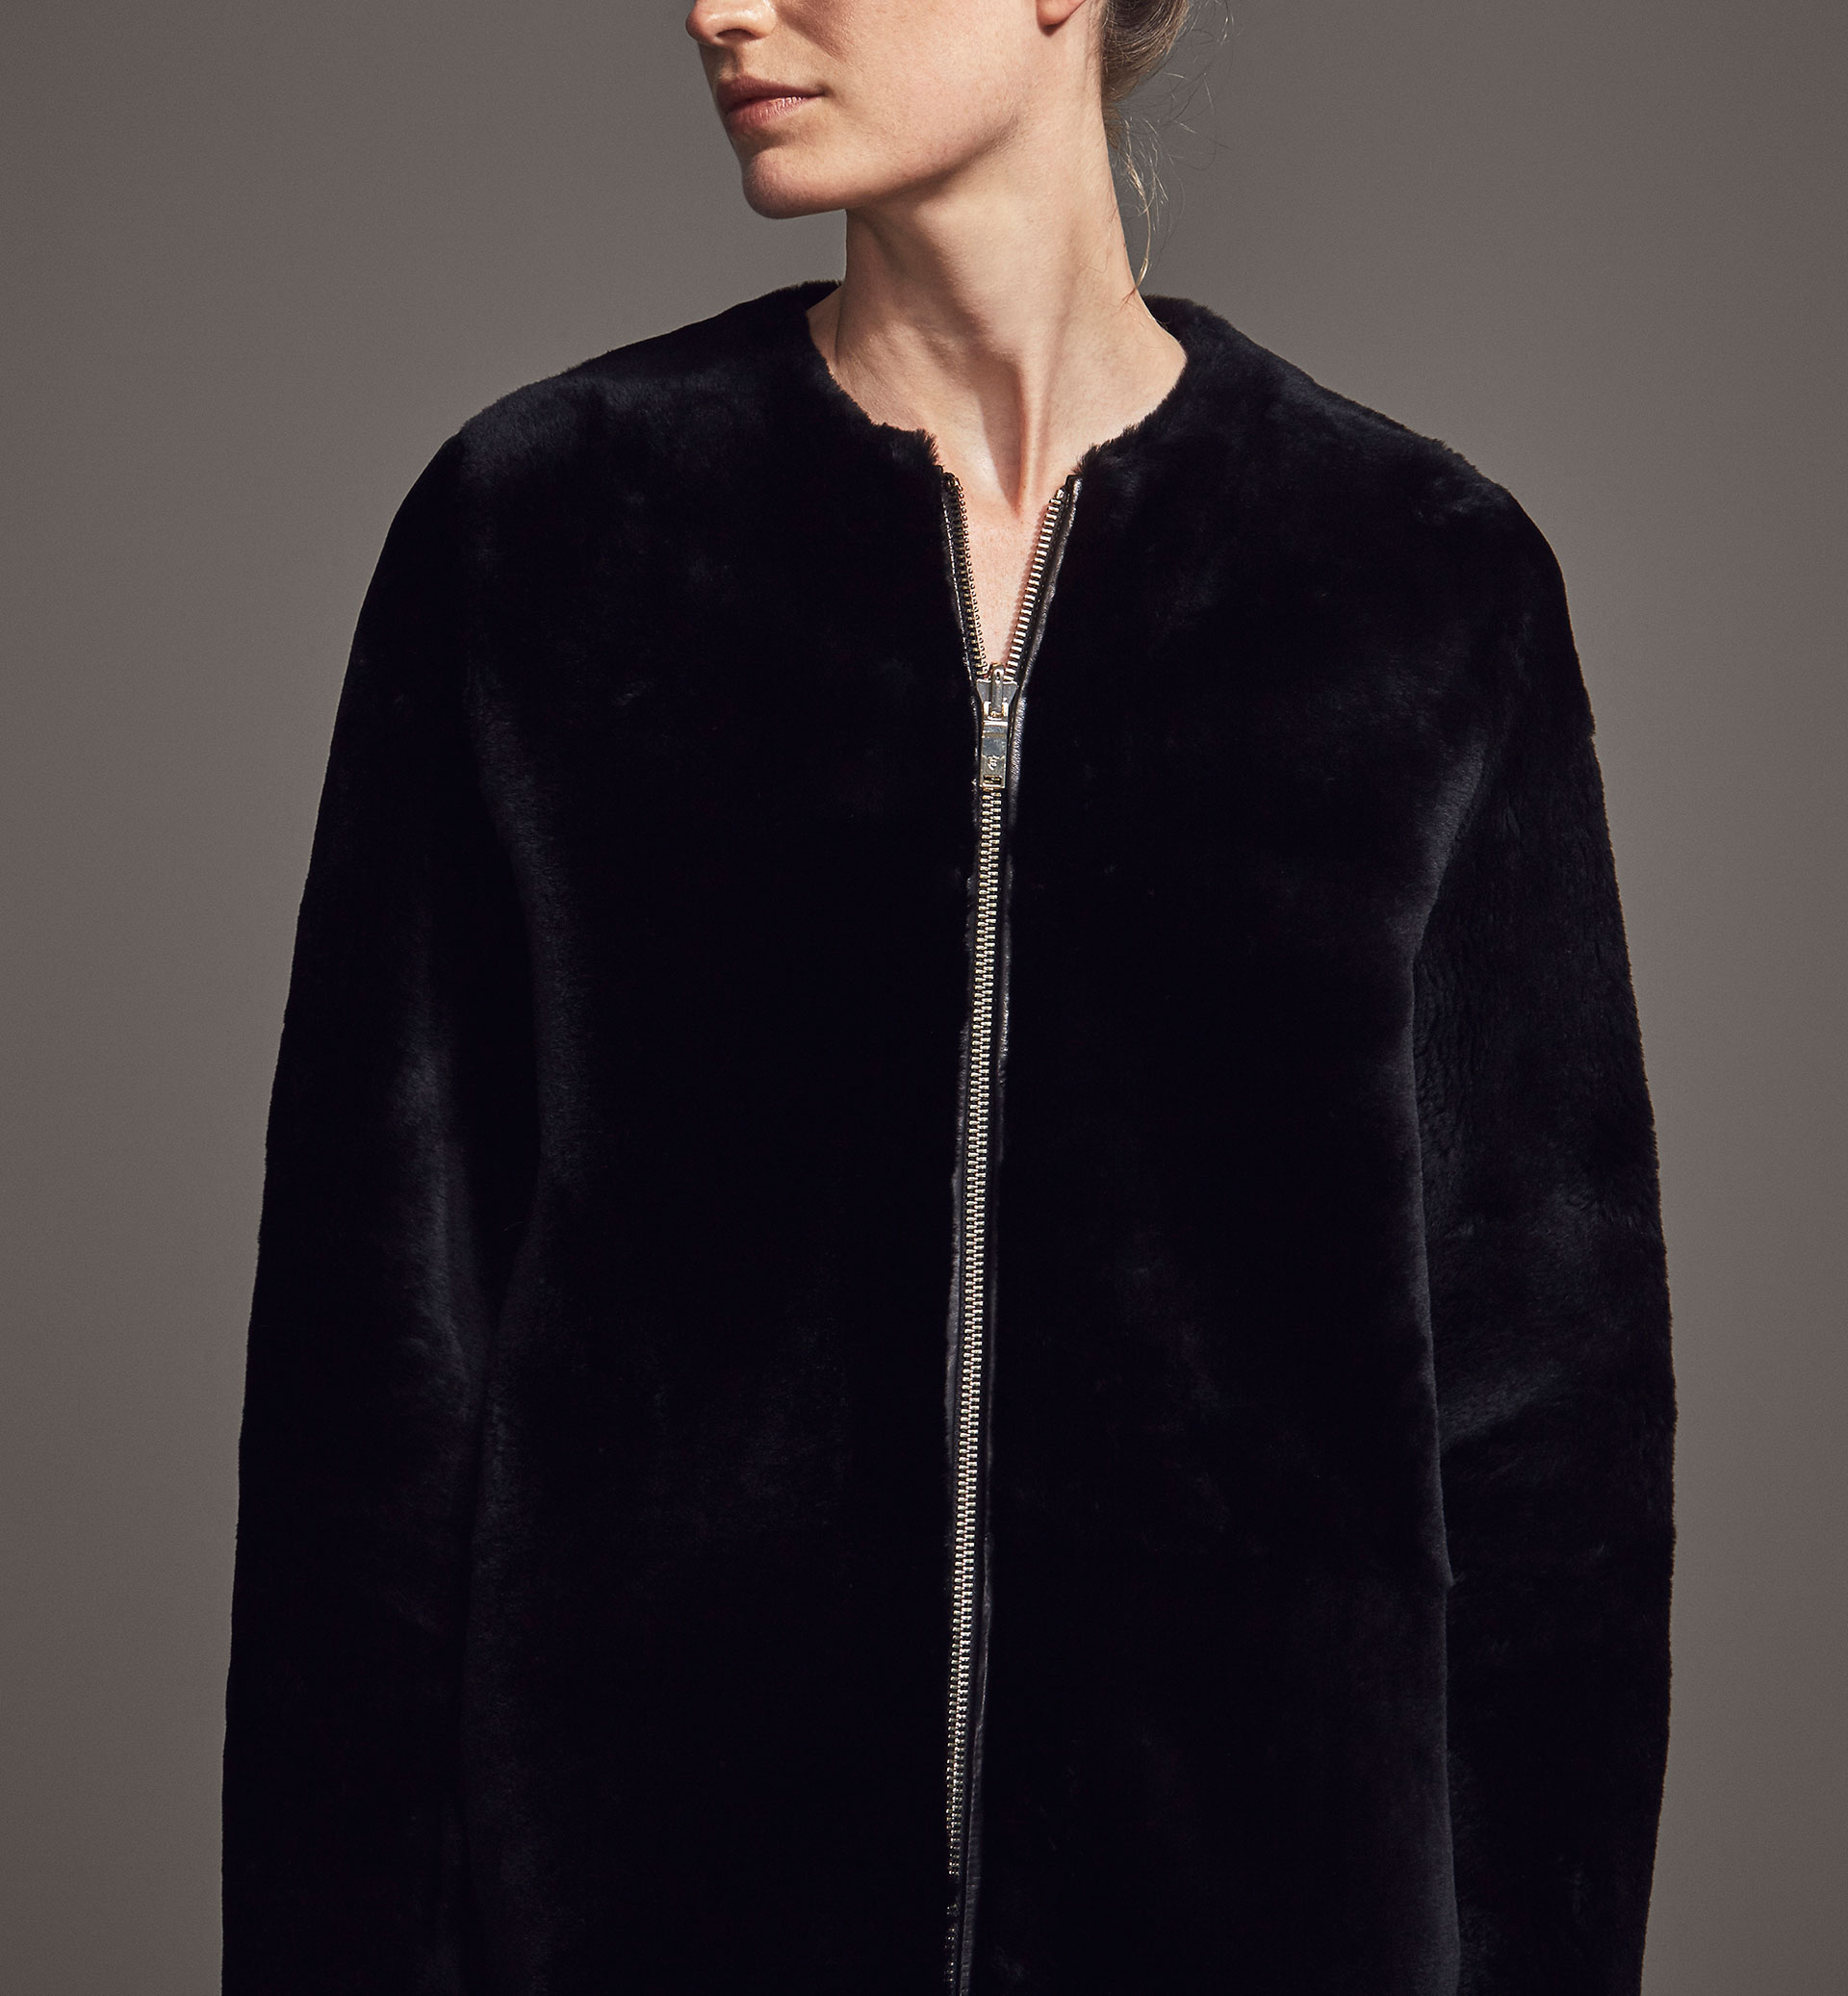 LIMITED EDITION BLACK REVERSIBLE LAMBSKIN COAT